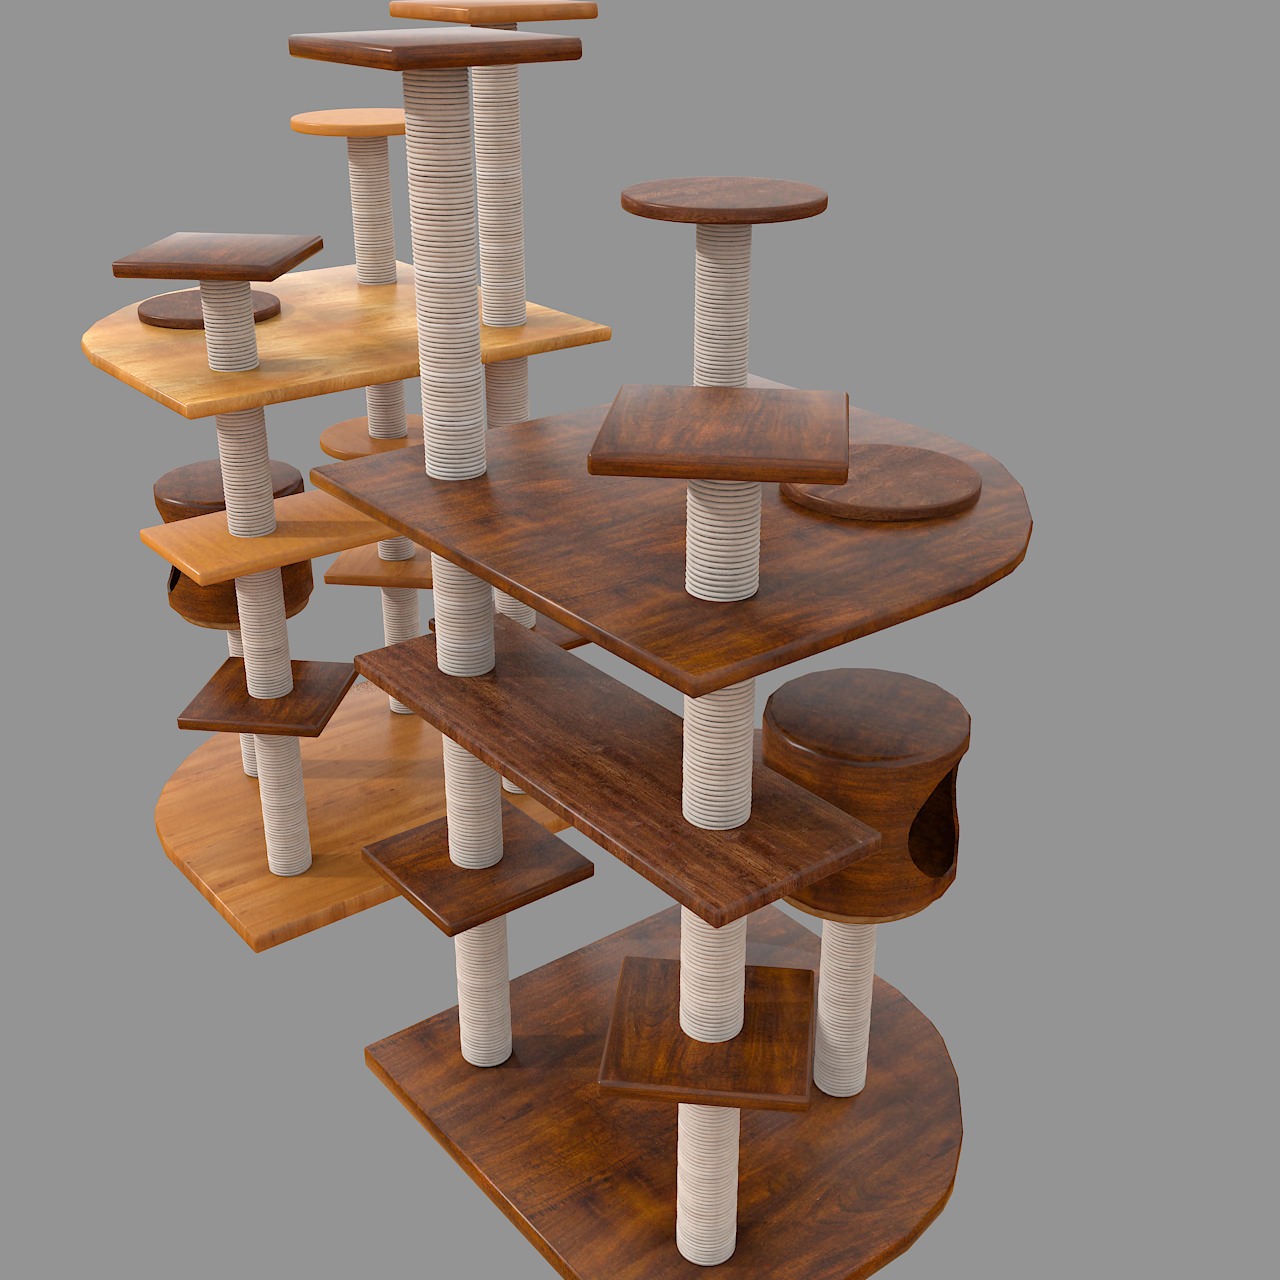 Wooden Cat Tree Construction Architectural Details Other